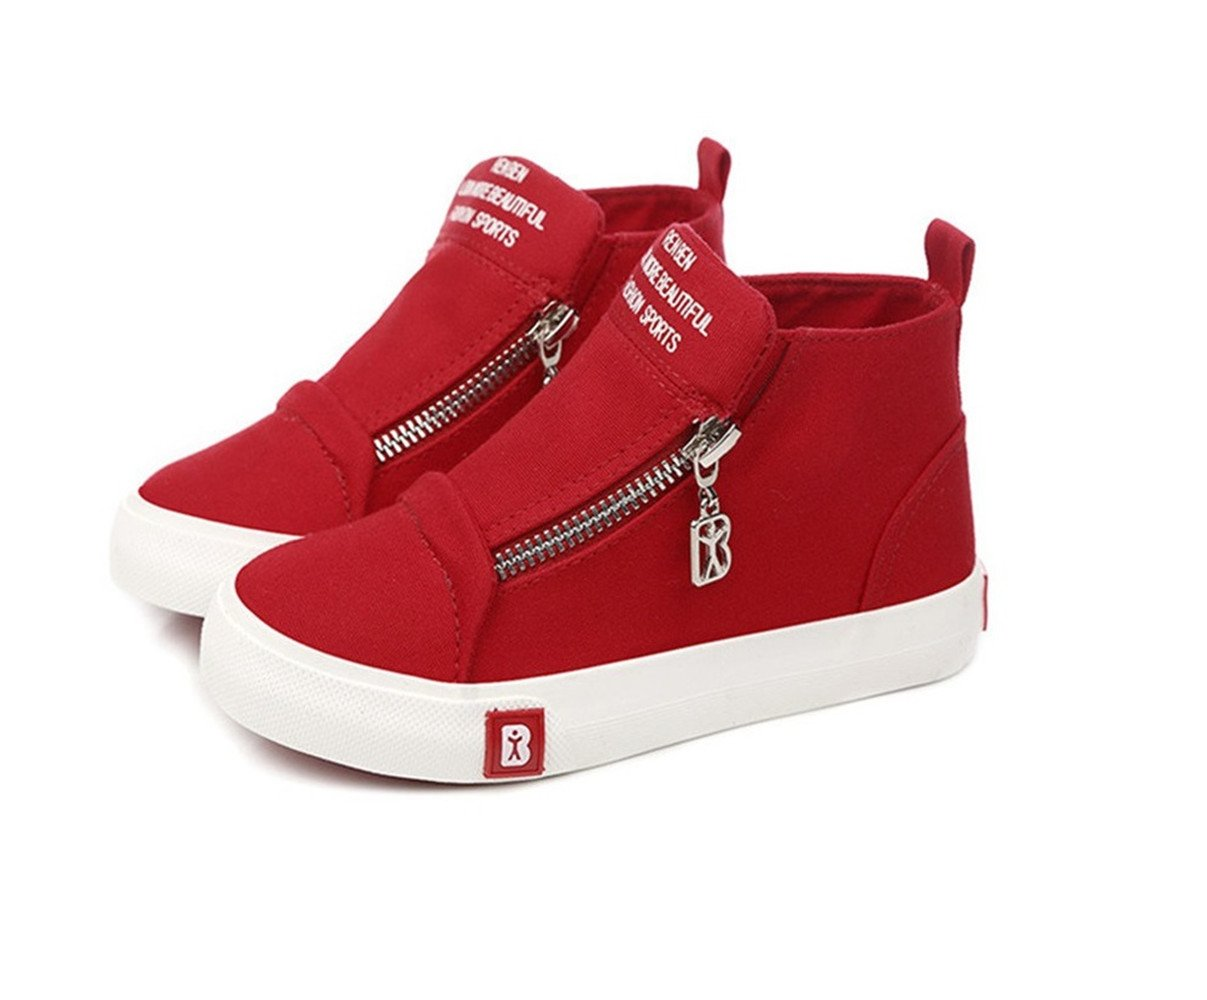 BENHERO Classic Kids Casual Comfort Zipper Lace Up High-Top Canvas Sneaker Shoes Trainers (Toddler/Little Kid/Big Kid) (4.5 M US Big Kid, 5129 Red)